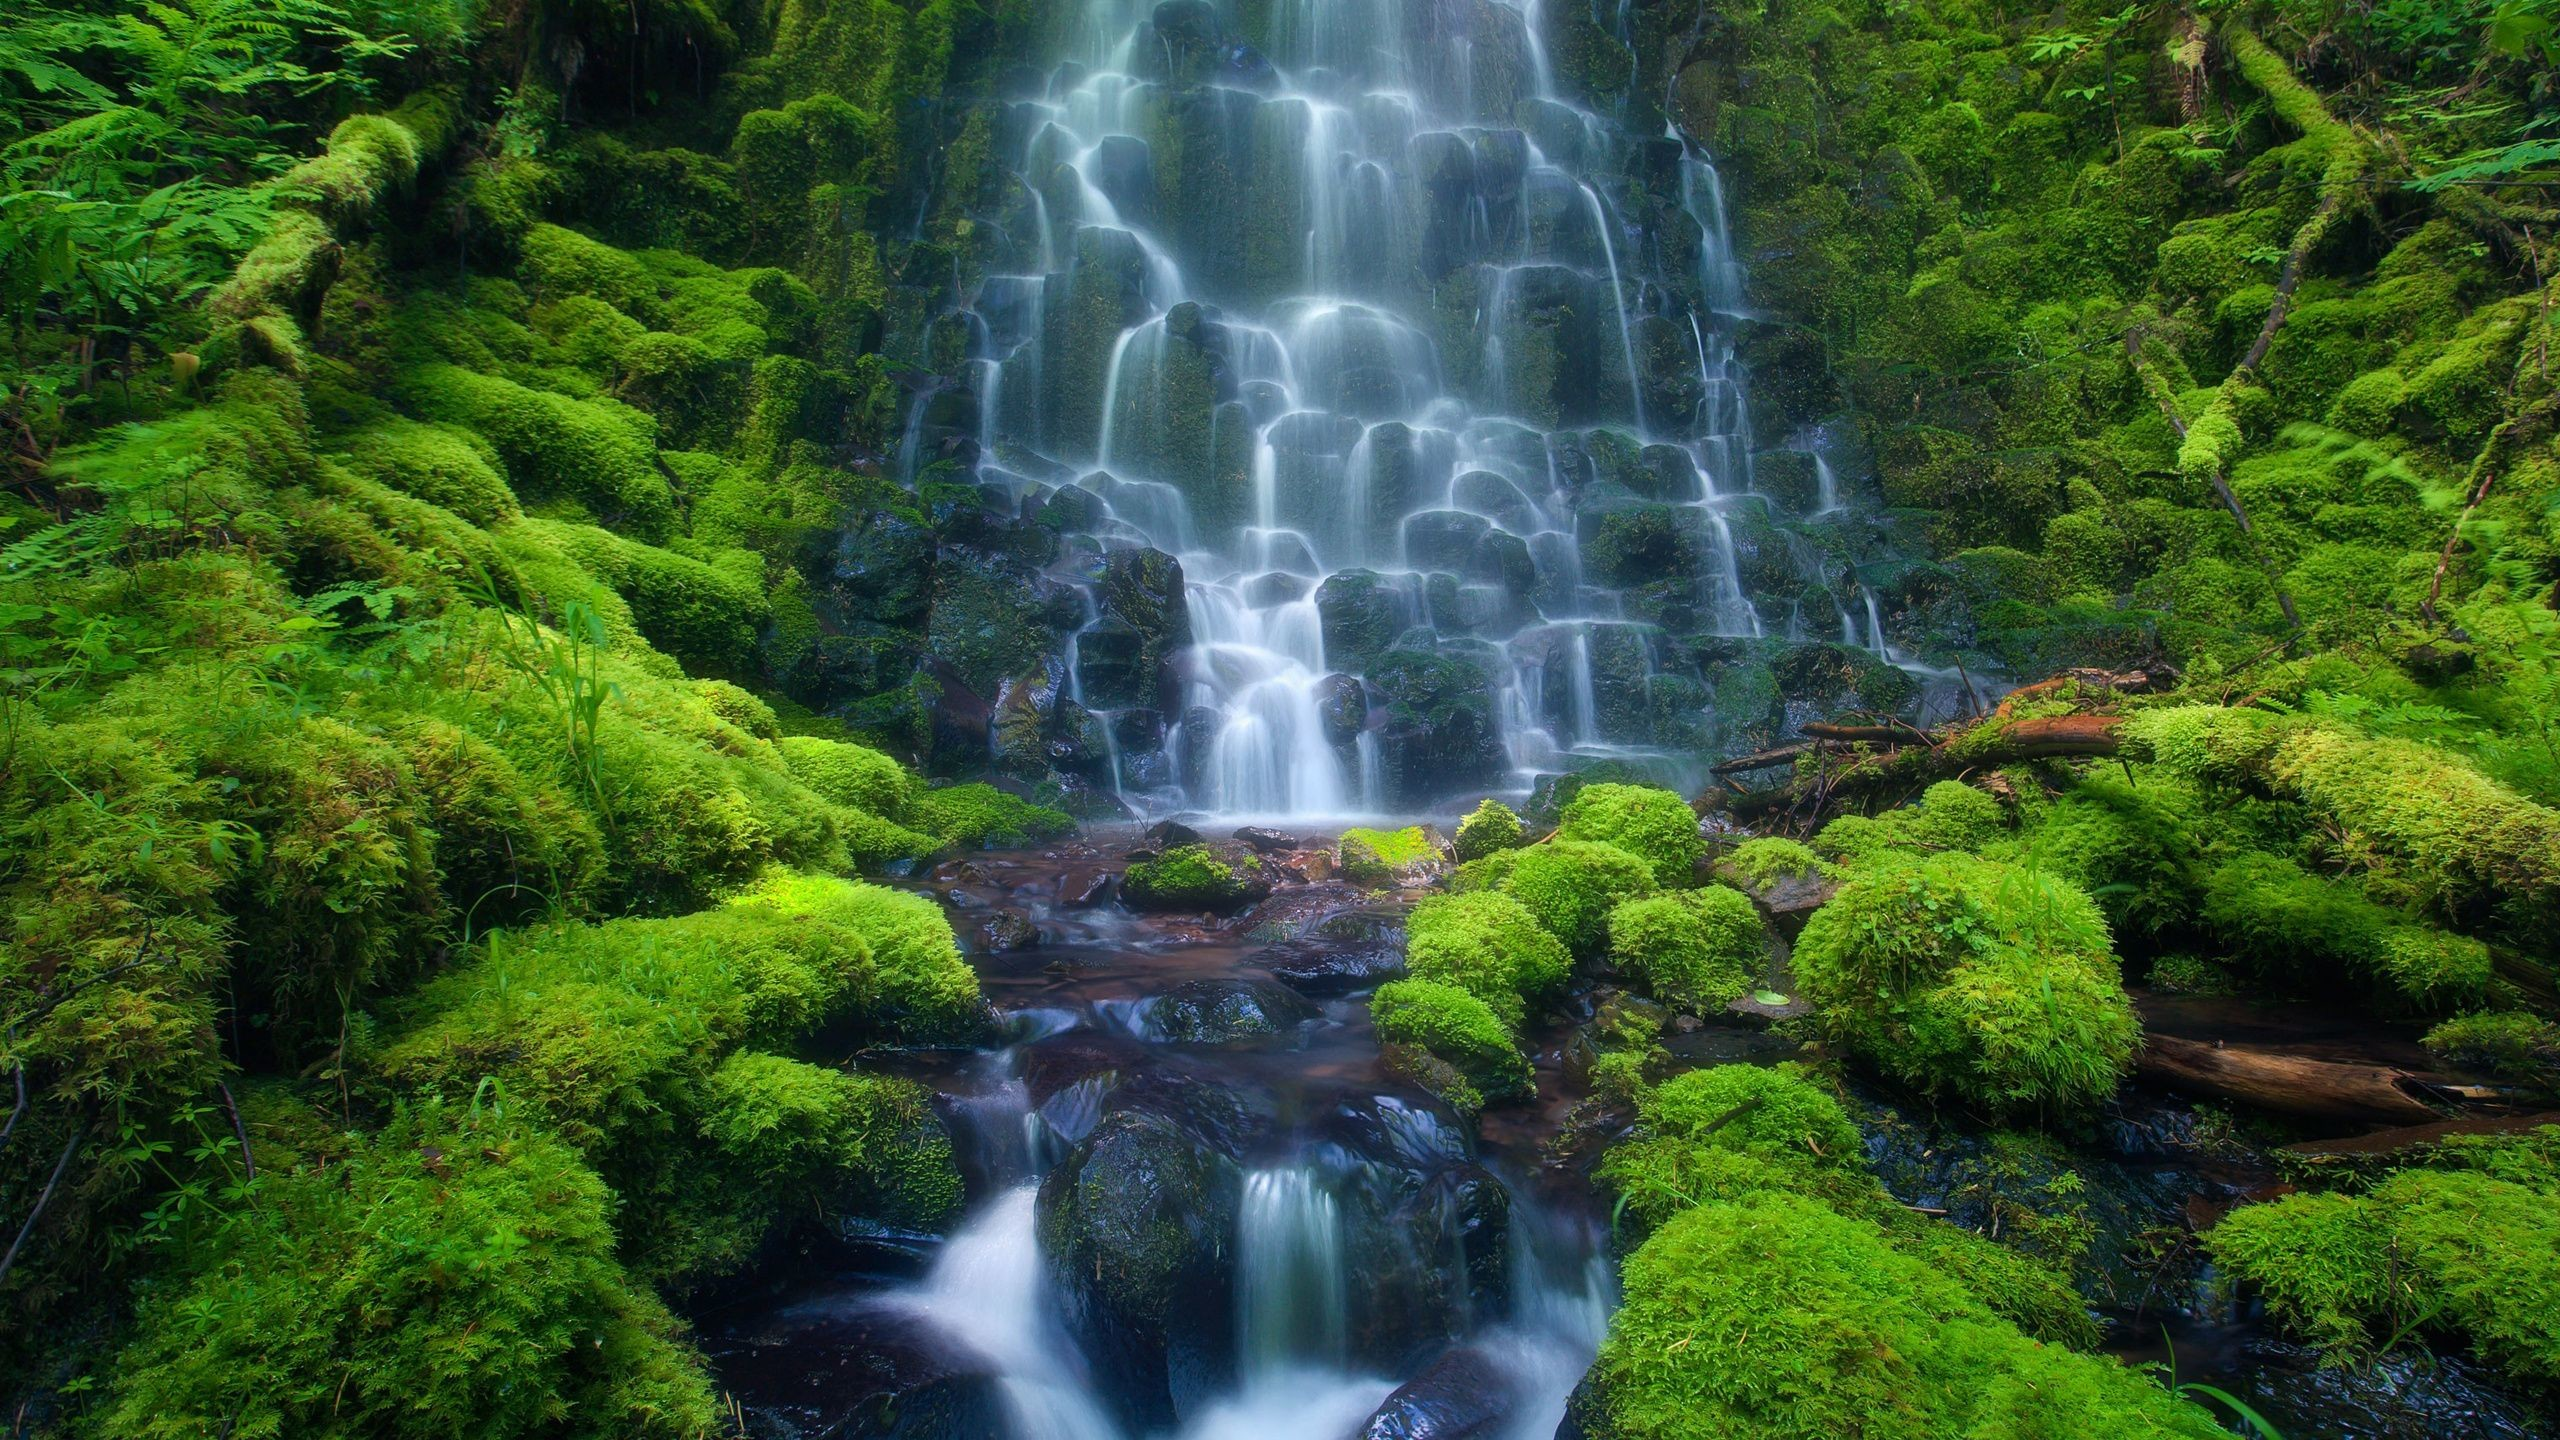 Animated Wallpapers Free Download For Xp Animated Waterfall Wallpaper With Sound 46 Images